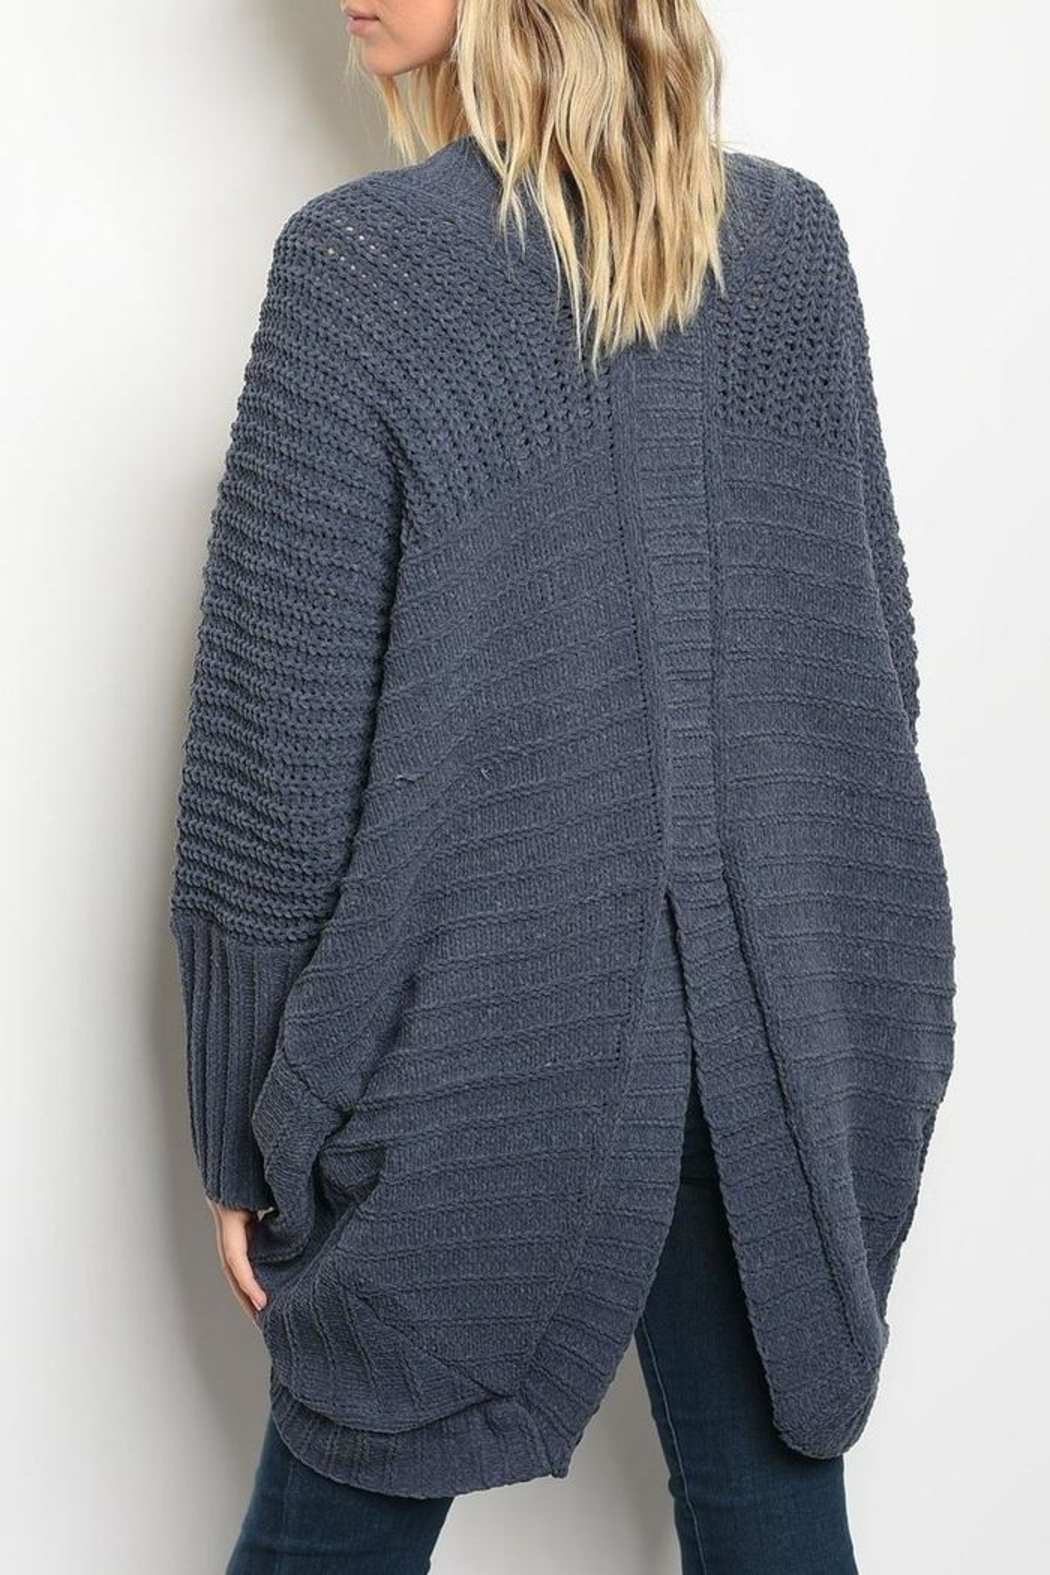 LoveRiche Chunky Navy Cardigan - Front Full Image